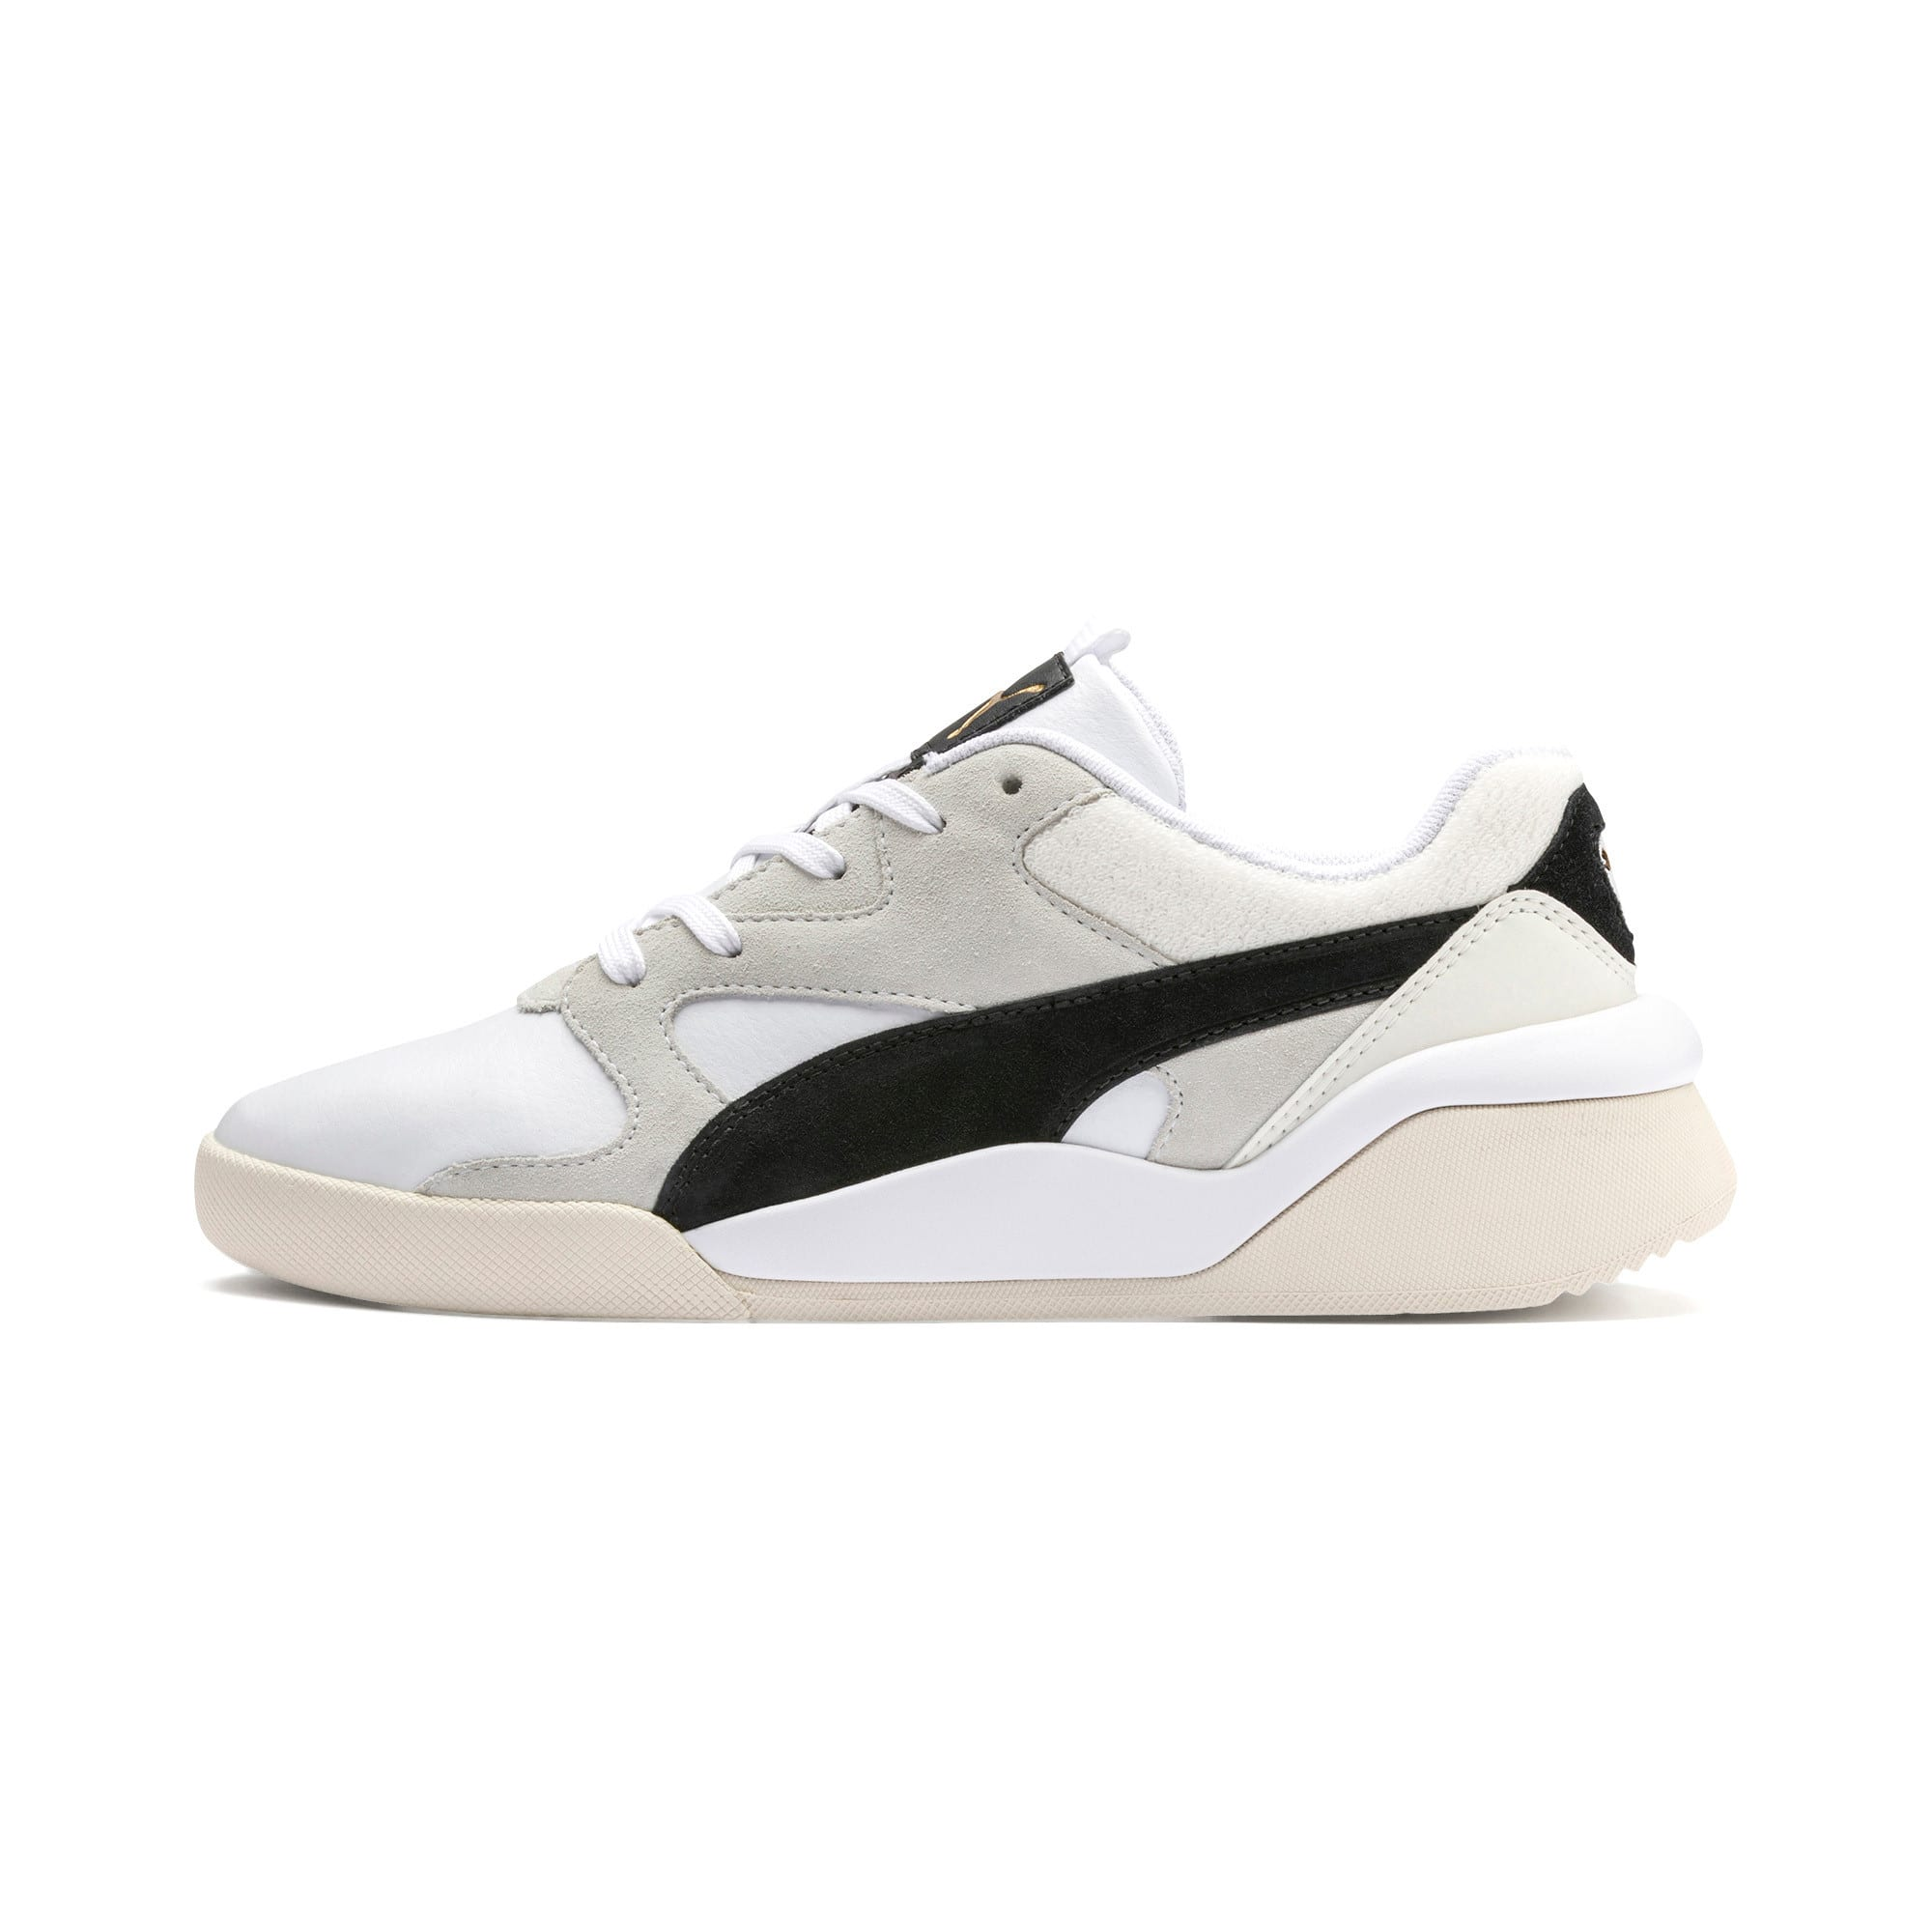 Thumbnail 1 of Aeon Heritage Women's Sneakers, Puma White-Puma Black, medium